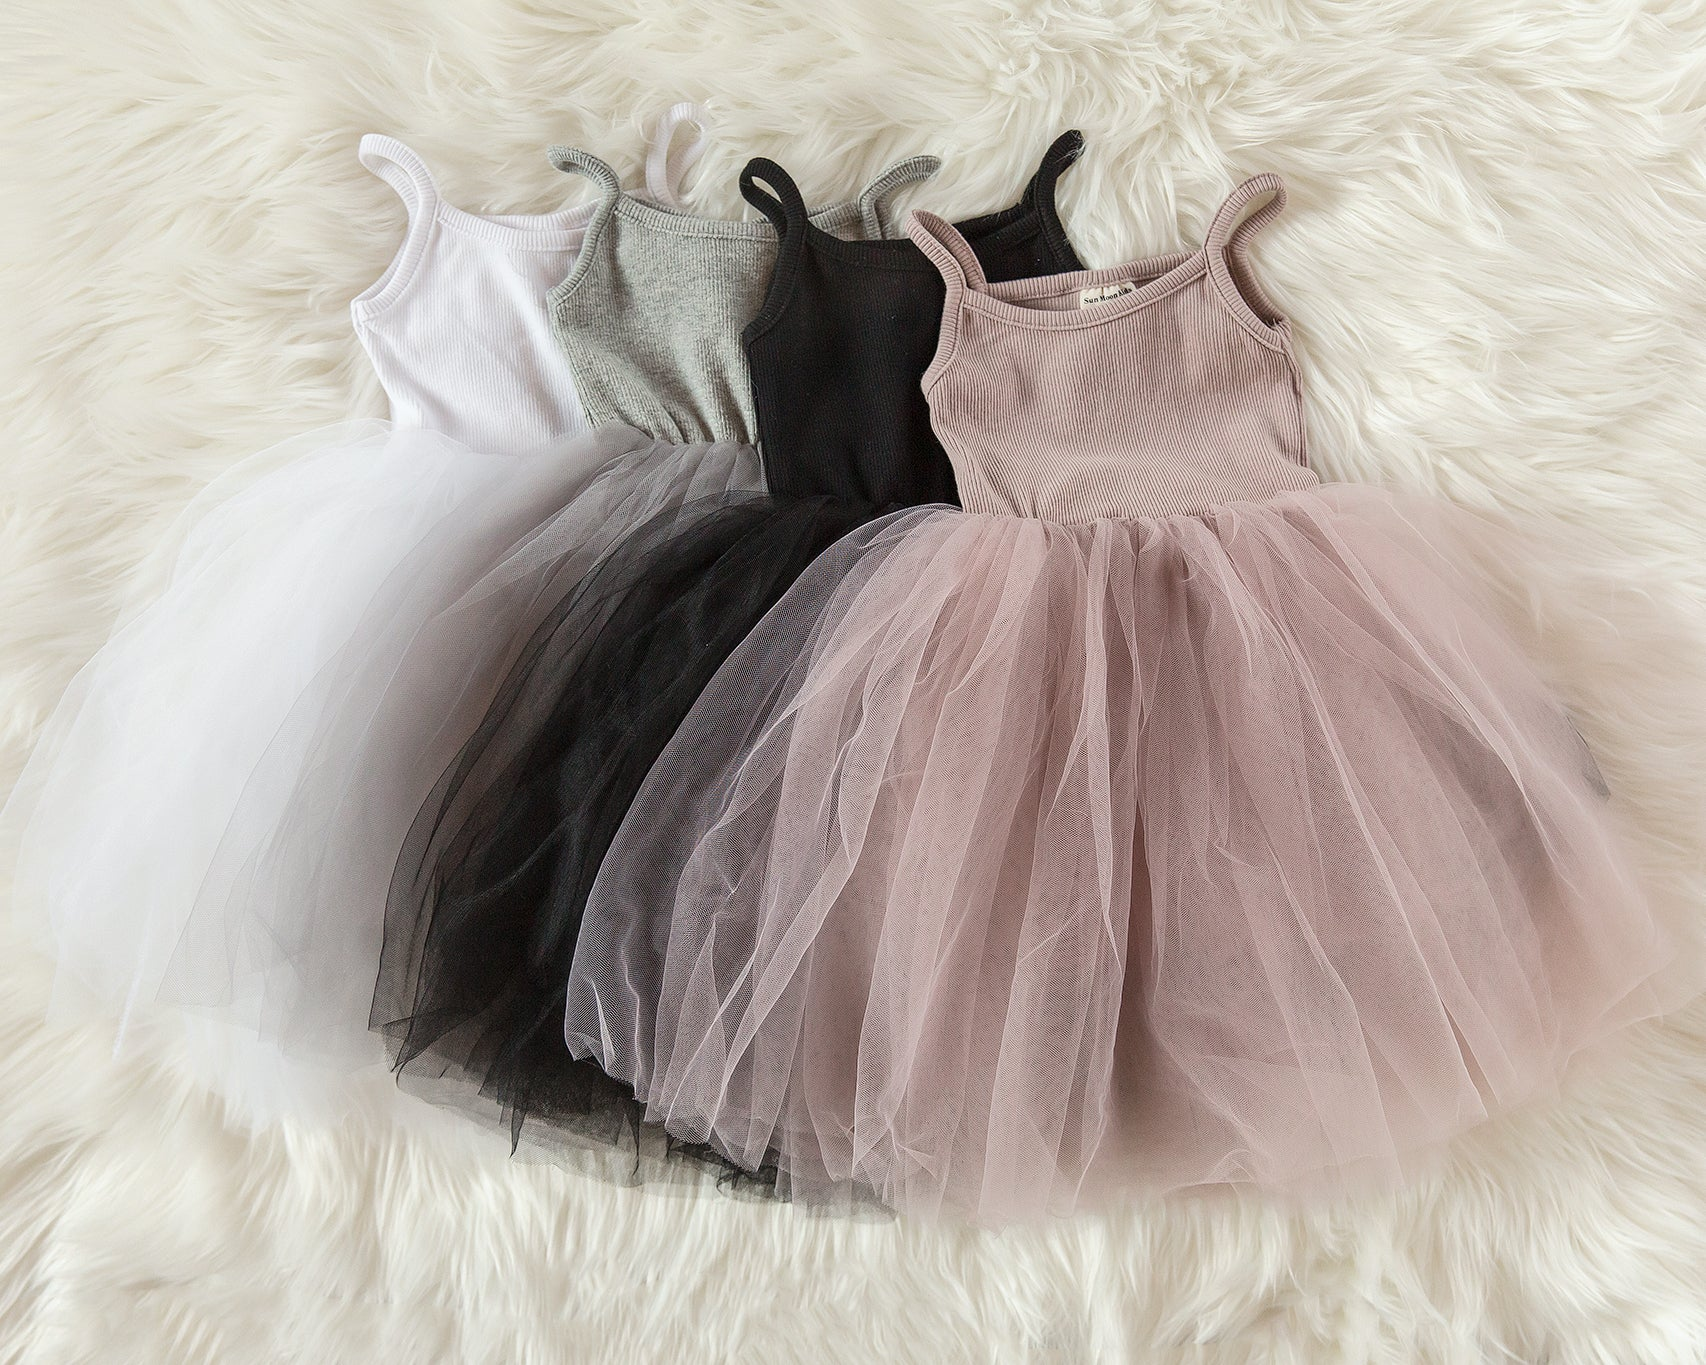 Ballerina Dress in Black